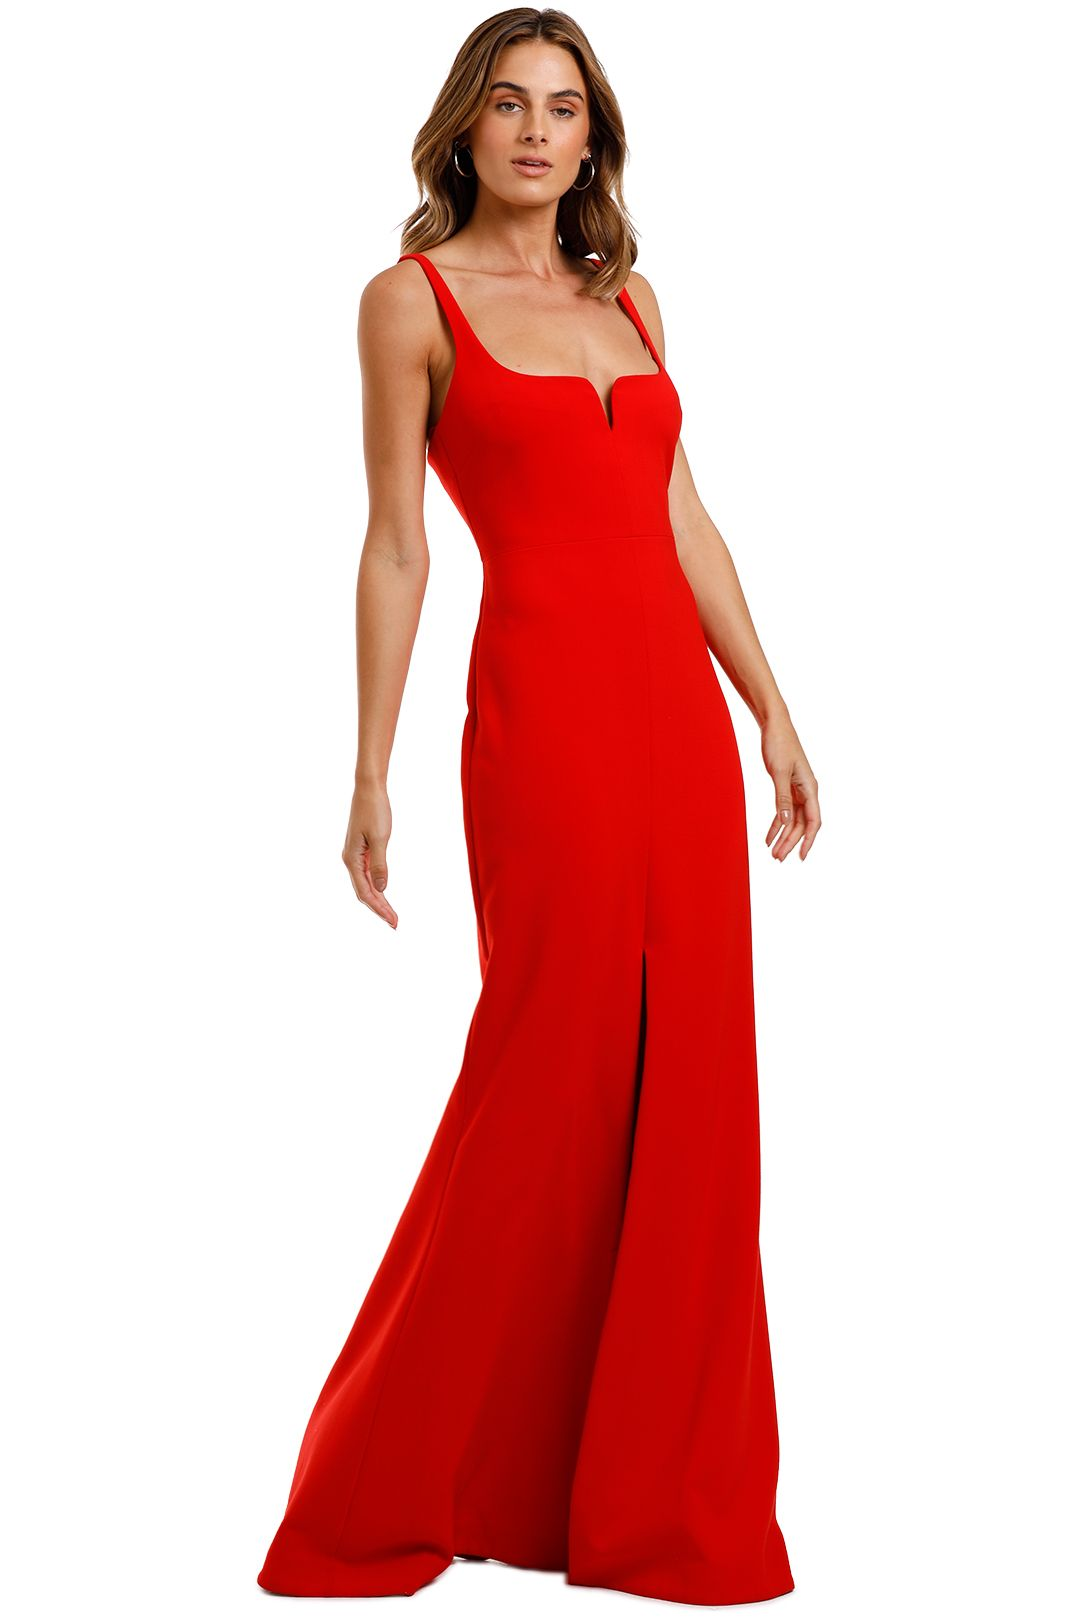 Likely NYC Constance Gown Scarlet Floor Length